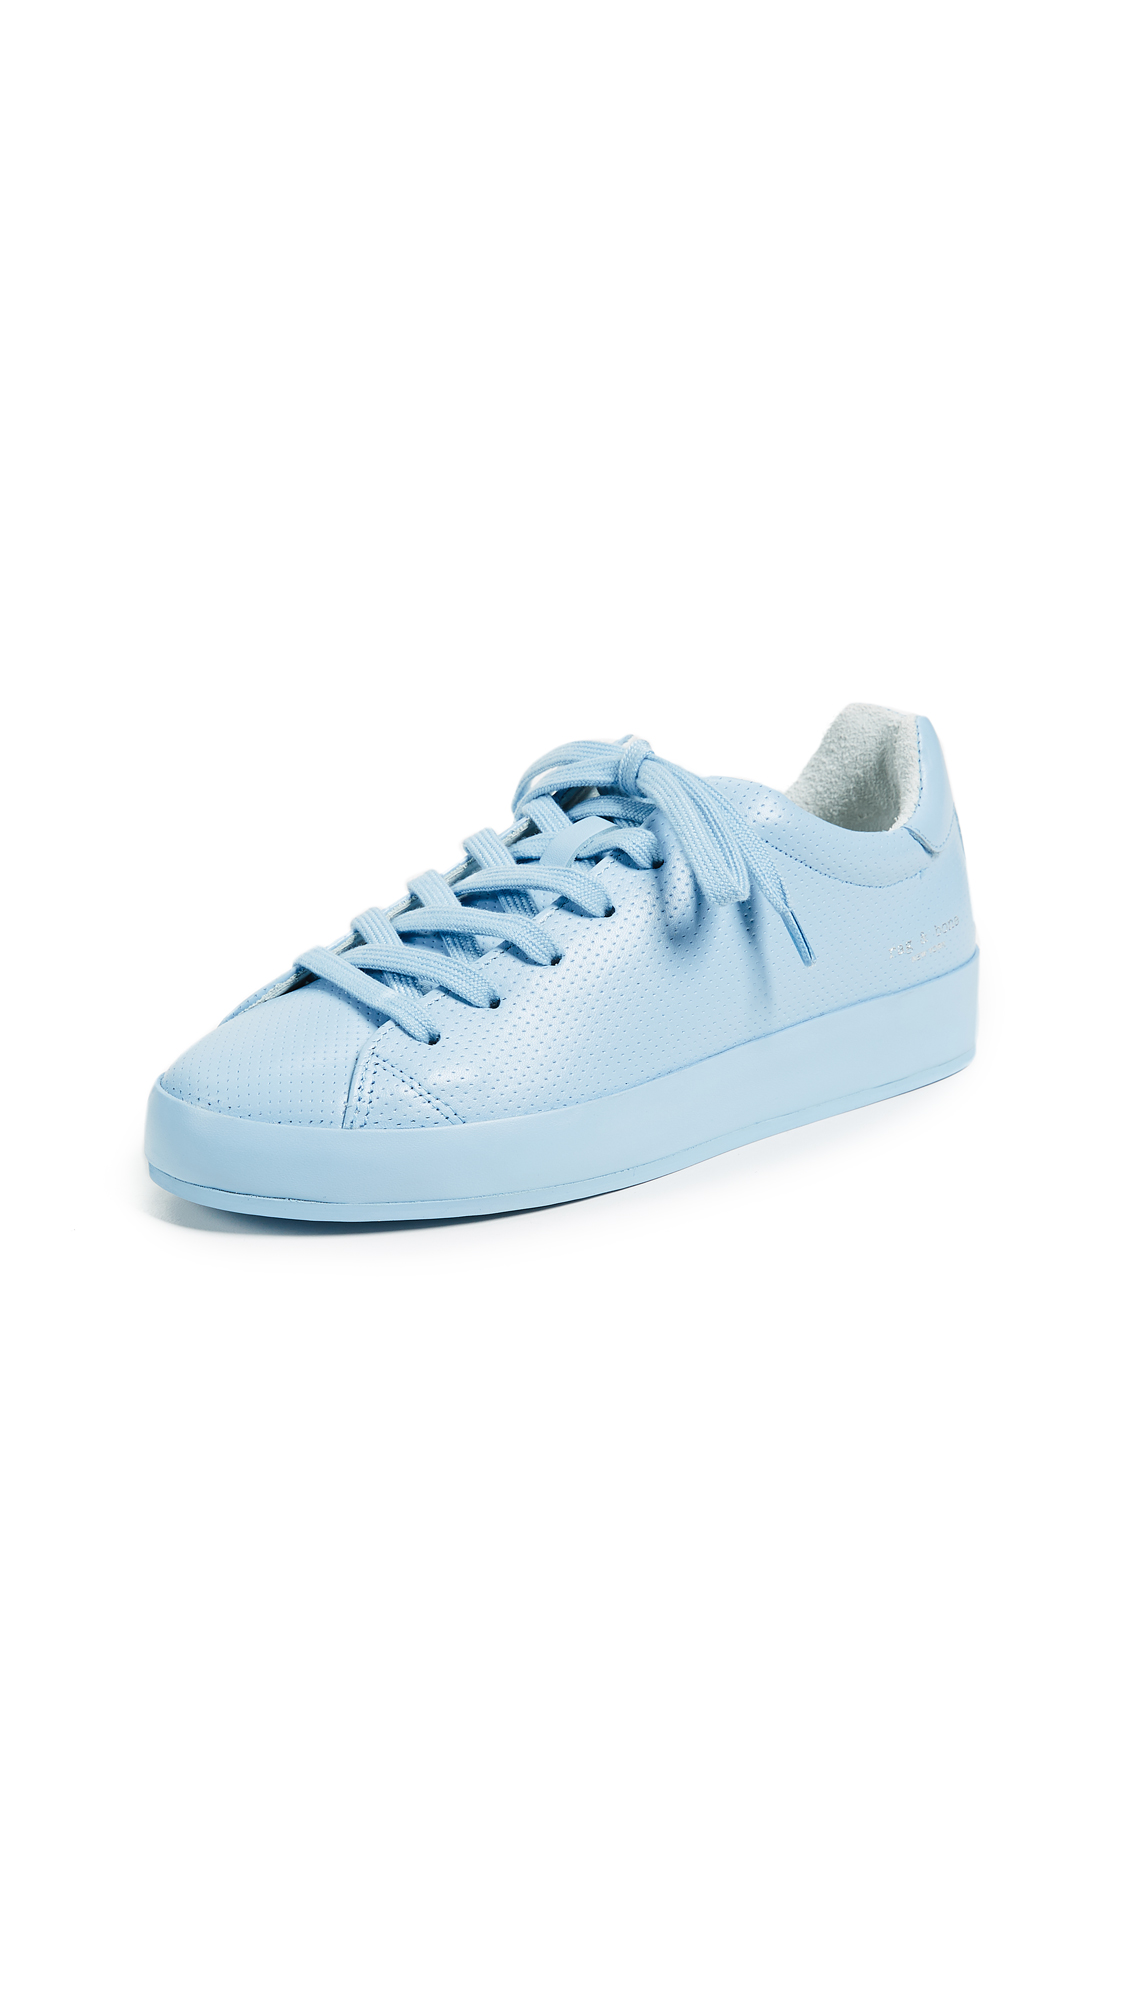 Rag & Bone RB1 Low Sneakers - Chambray